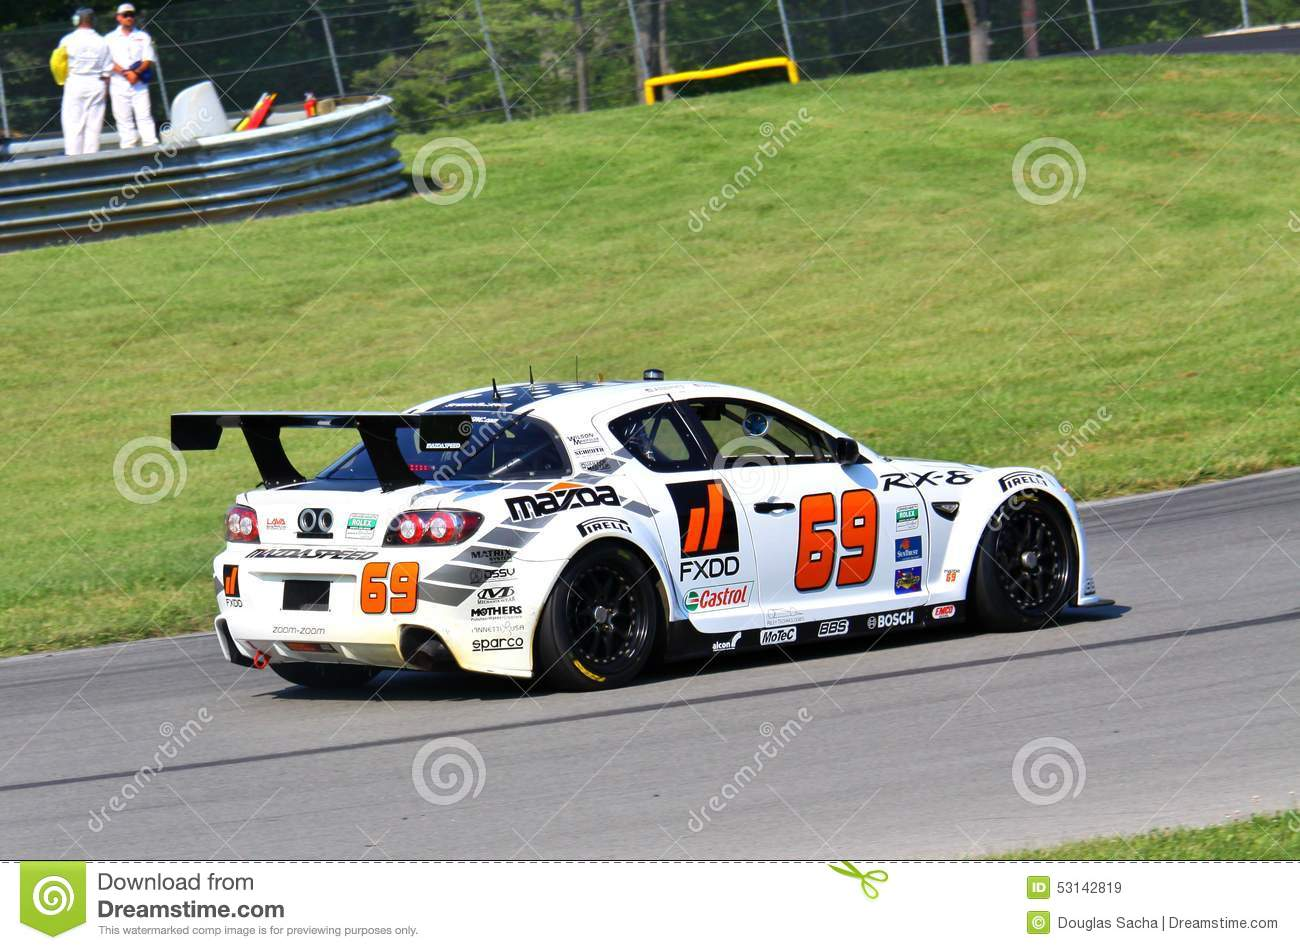 Speedsource mazda rx 8 racing editorial stock image for American traveler motor club